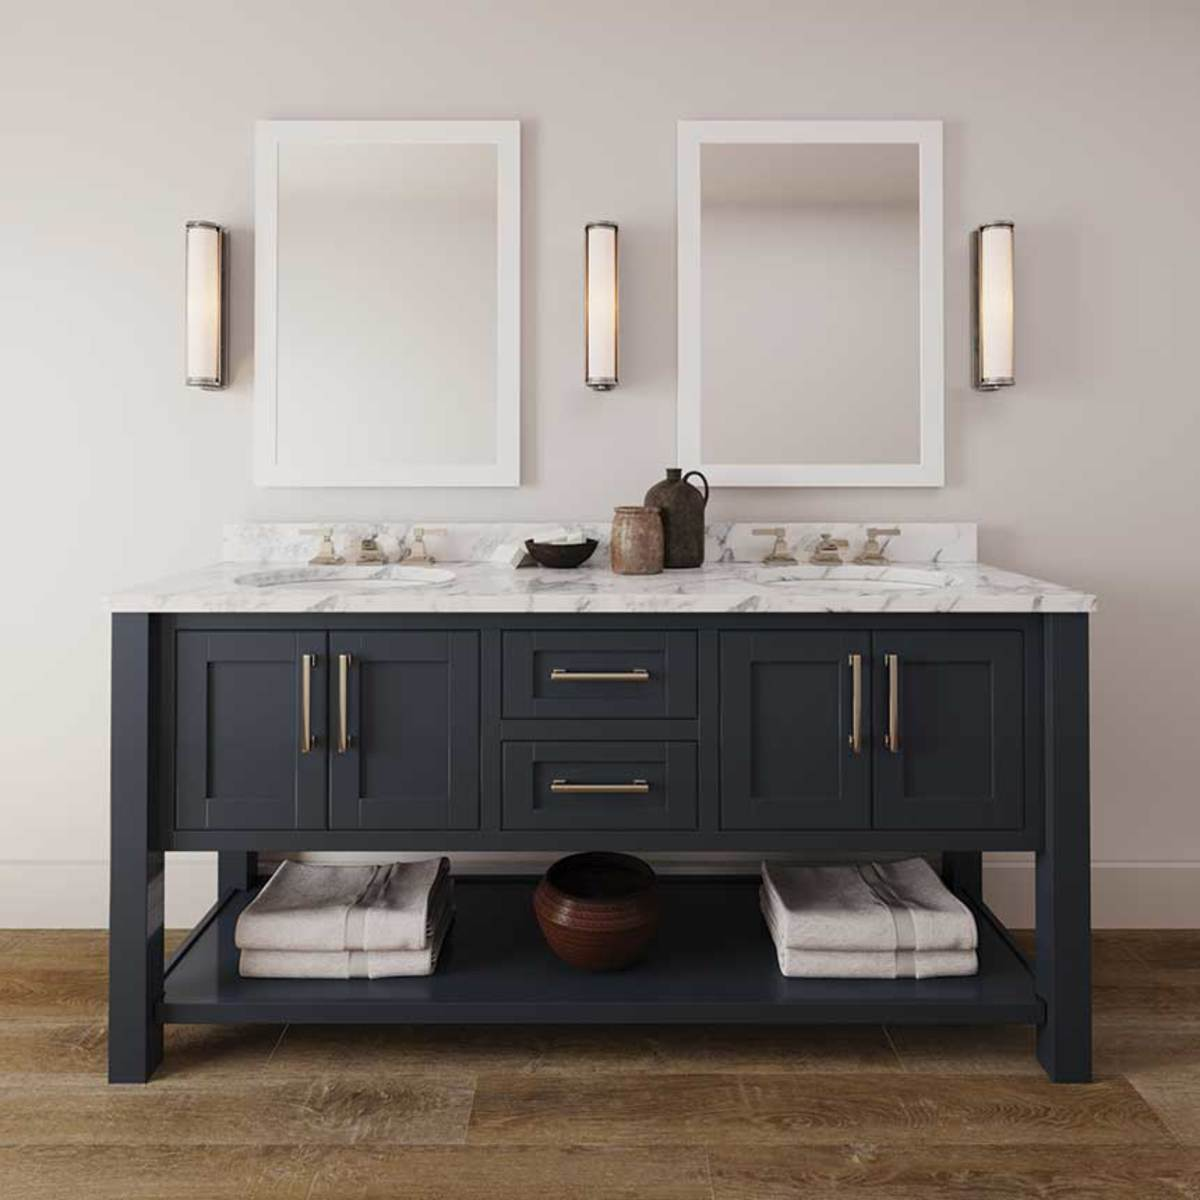 Bathroom vanity from Revolution Furnishings.